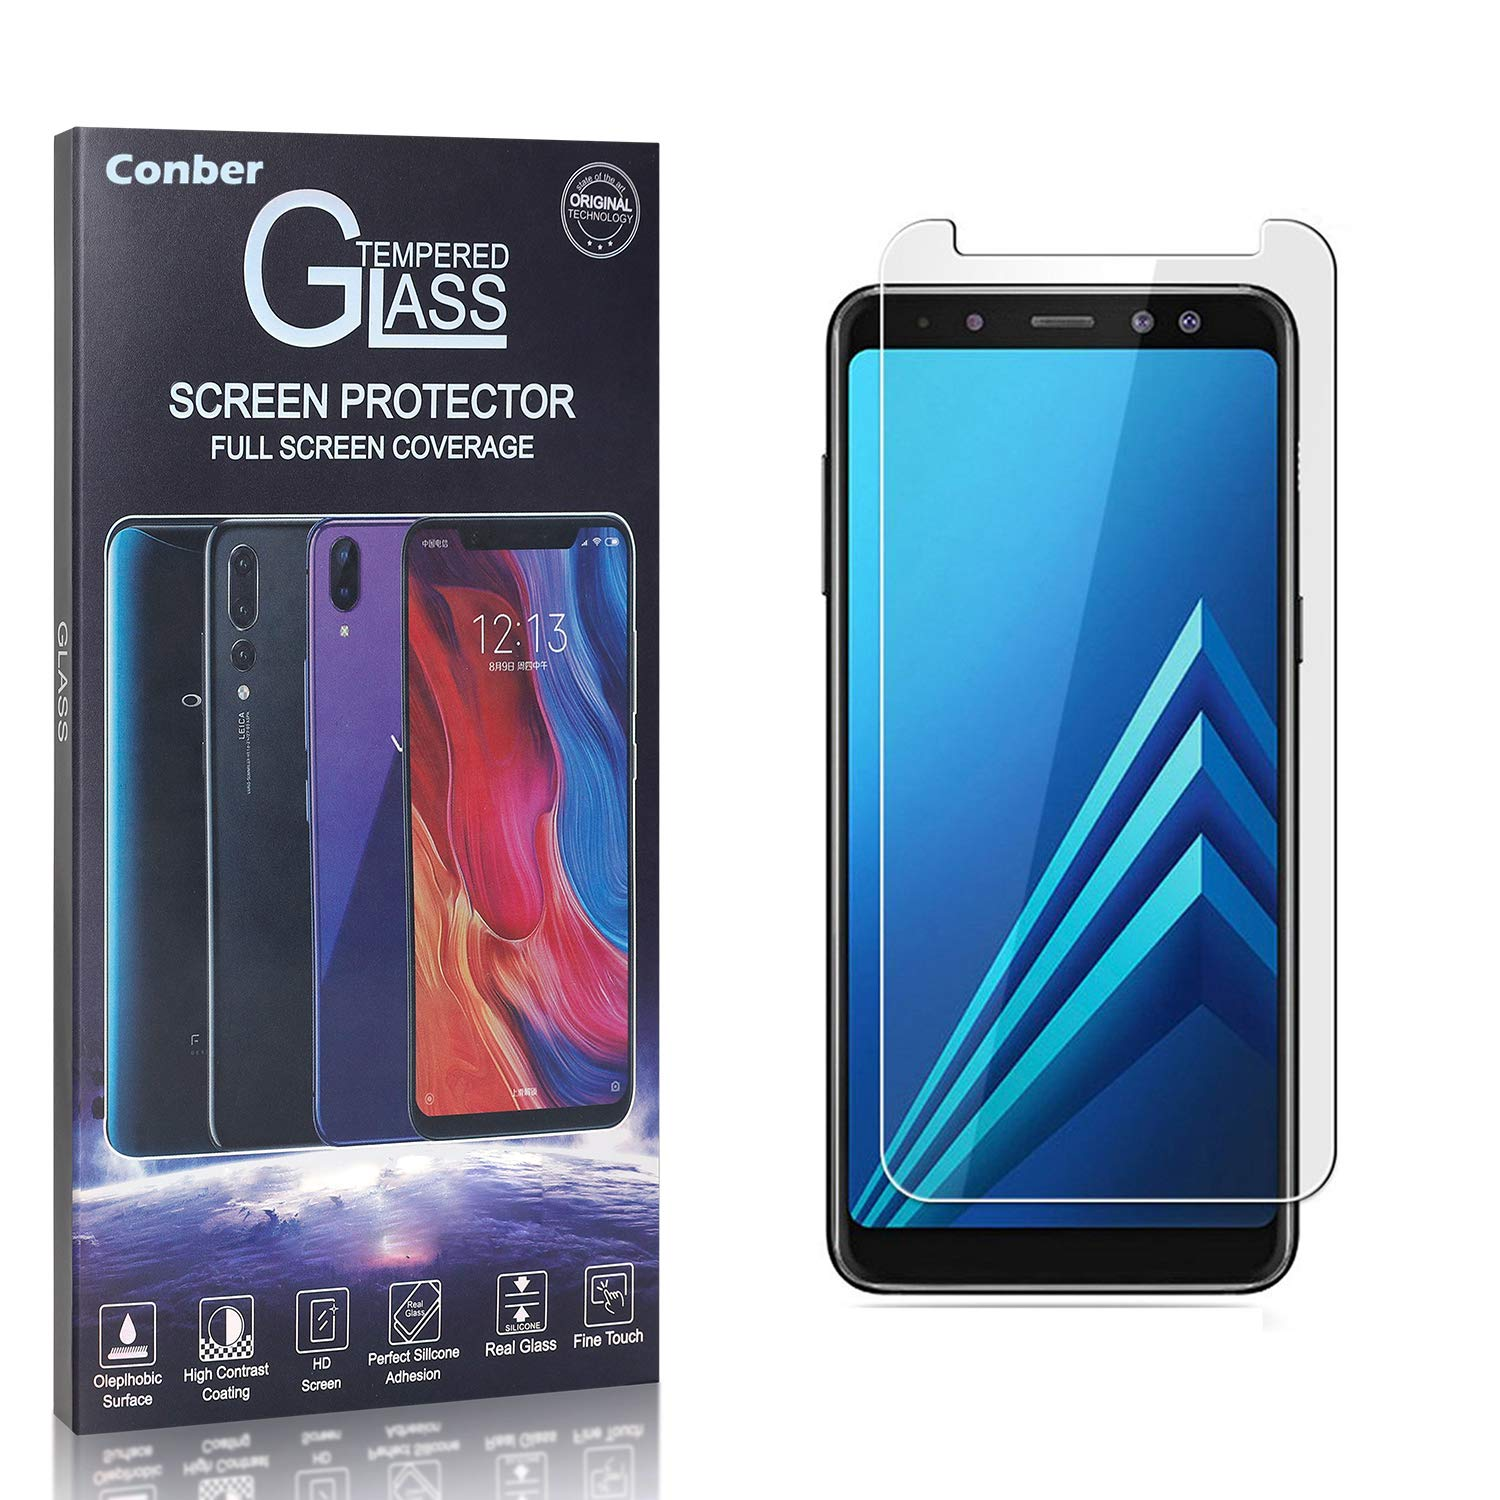 Conber 2 Superlatite Pack Max 89% OFF Screen Protector for Galaxy Plus 2018 A8 Samsung